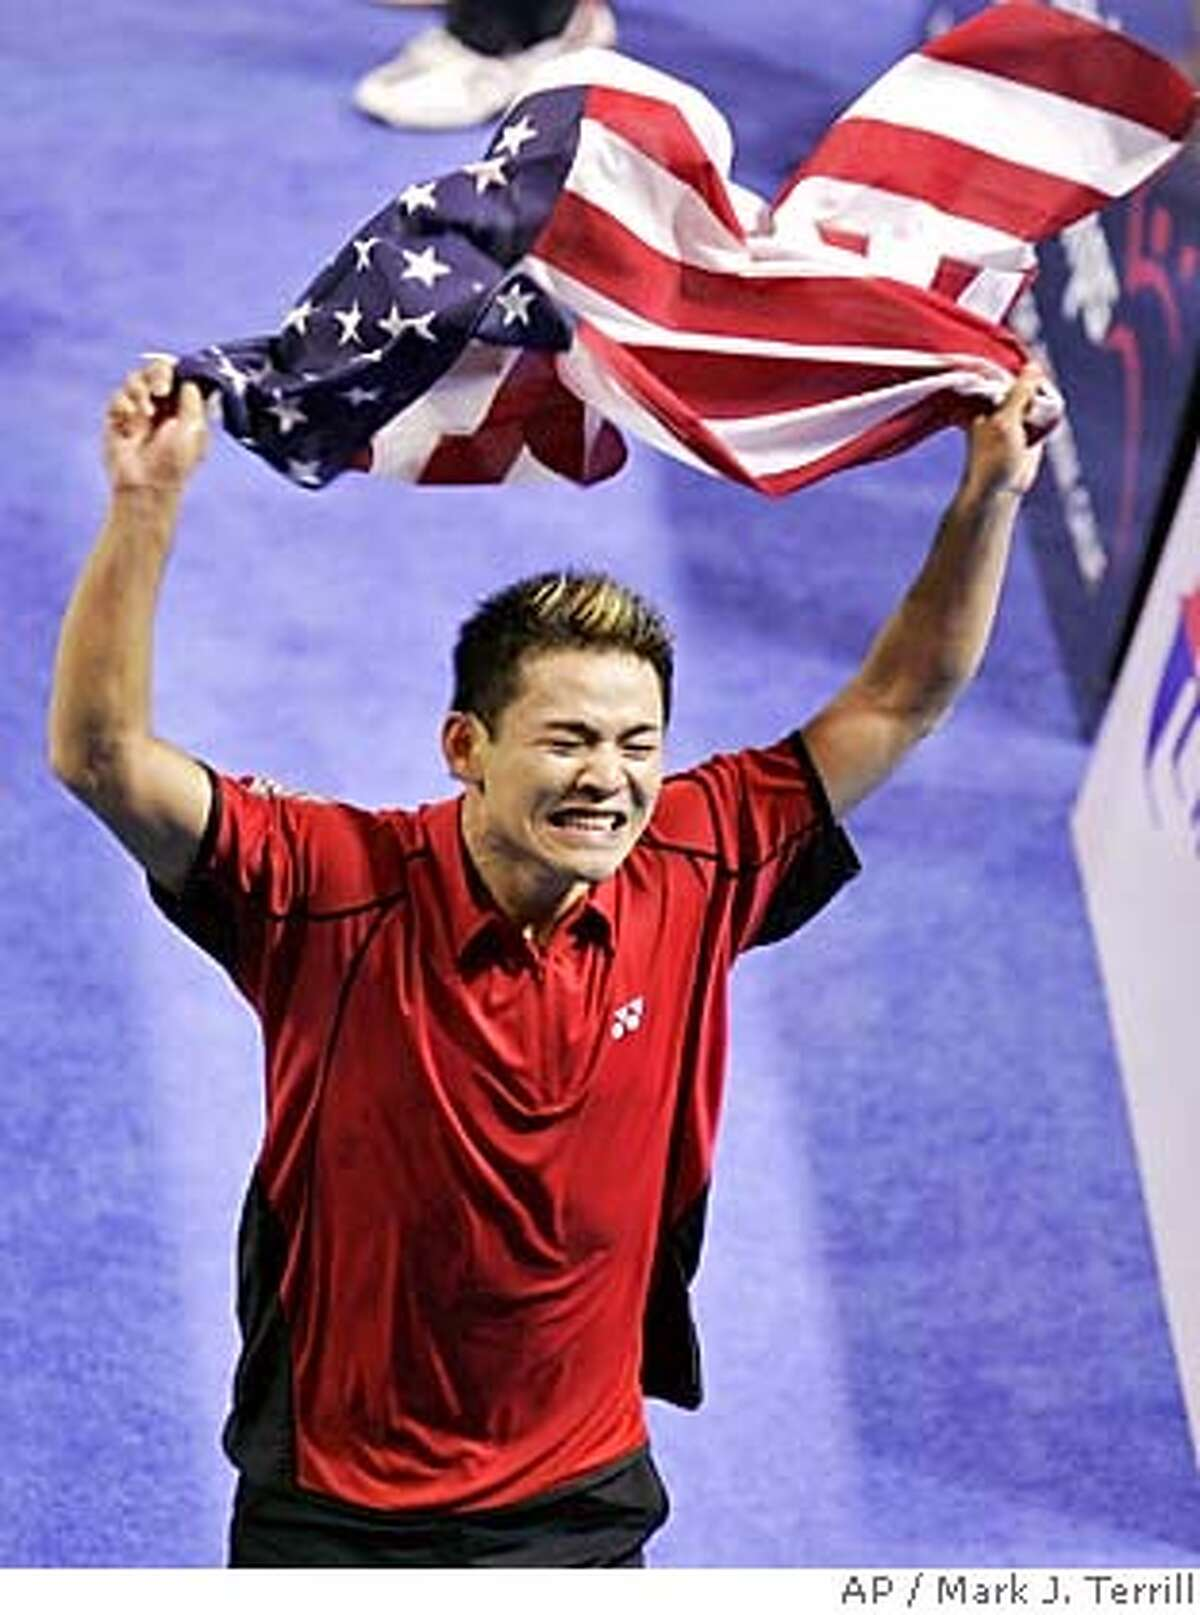 USA's Howard Bach runs with the American flag after he and teammate Tony Gunawan defeated Indonesia's Candra Wijaya and Sigit Budiarto during men's doubles finals at the IBF World Badminton Championships, Sunday, Aug. 21, 2005 in Anaheim, Calif. USA won the match 15-11, 10-15, 15-11. (AP Photo/Mark J. Terrill)